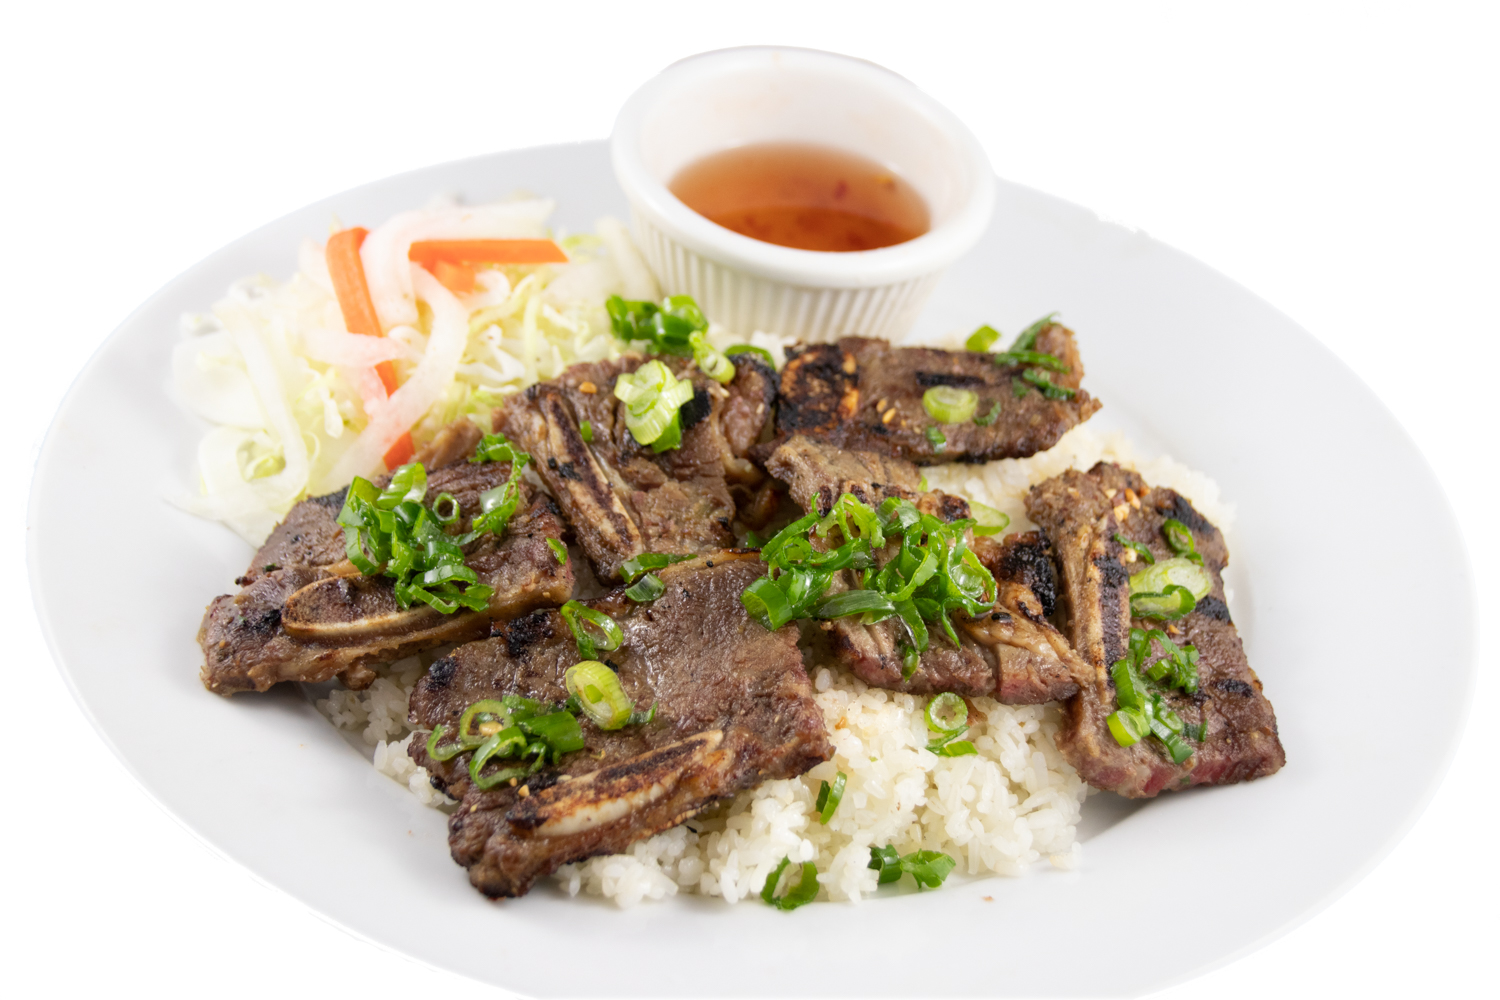 Cơm sườn bò – Barbequed beef short rib with rice